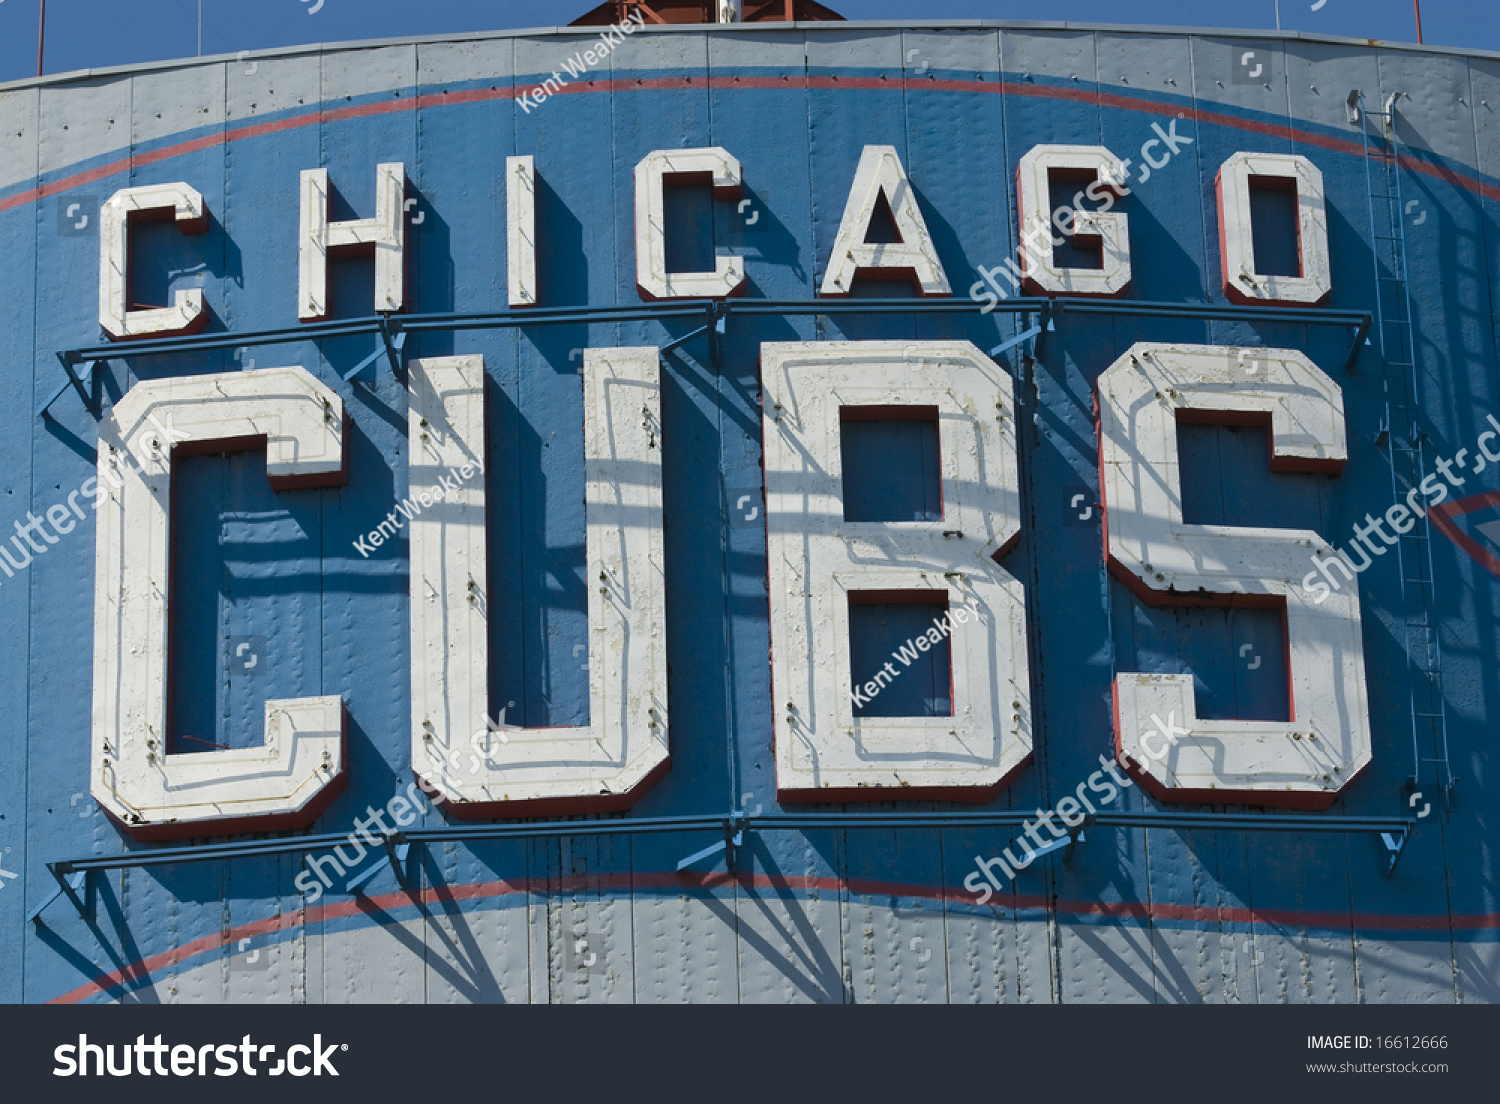 Chicago cubs sign wrigley field not stock photo 16612666 shutterstock chicago cubs sign at wrigley field not registered logo buycottarizona Images